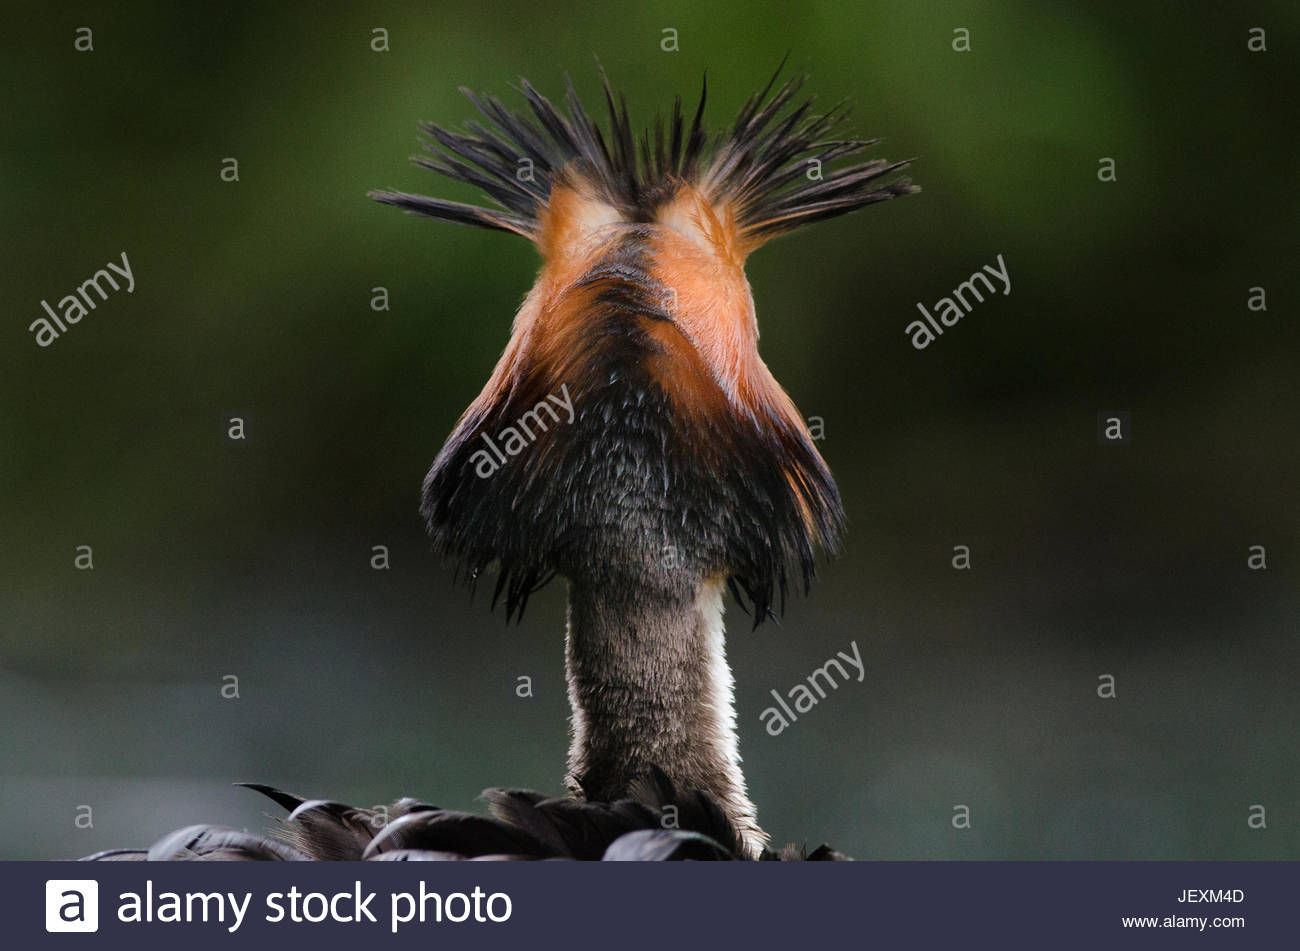 A great crested grebe, Podiceps cristatus, erecting its head plumes in a threat display to an intruding bird. - Stock Image